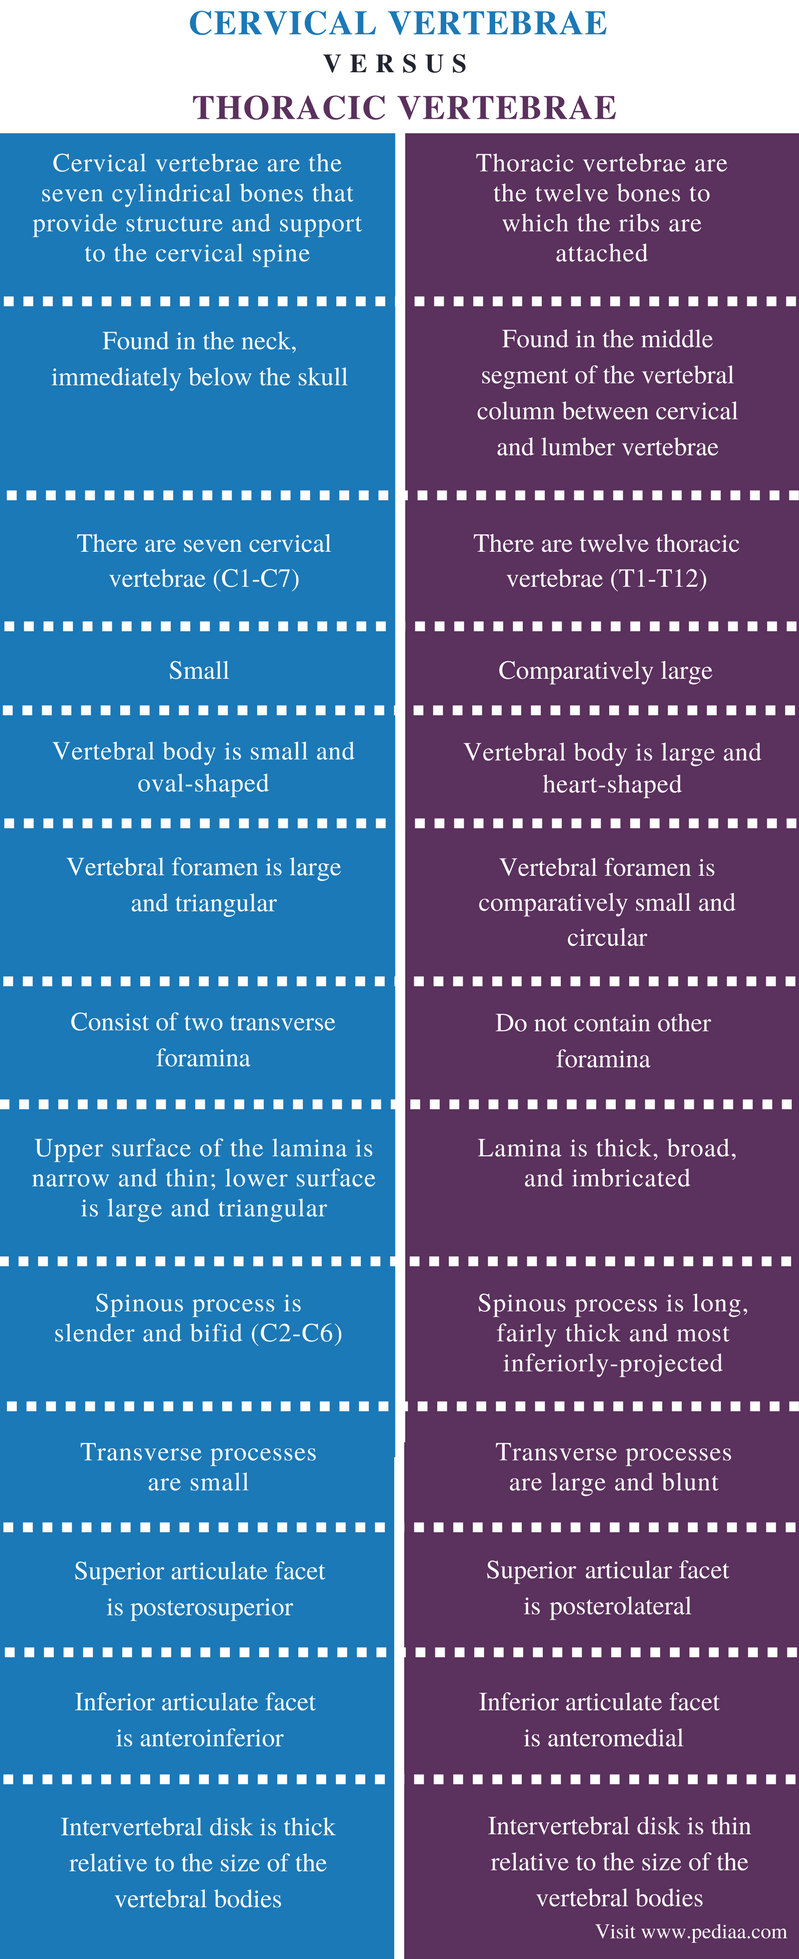 Difference Between Cervical and Thoracic Vertebrae - Comparison Summary